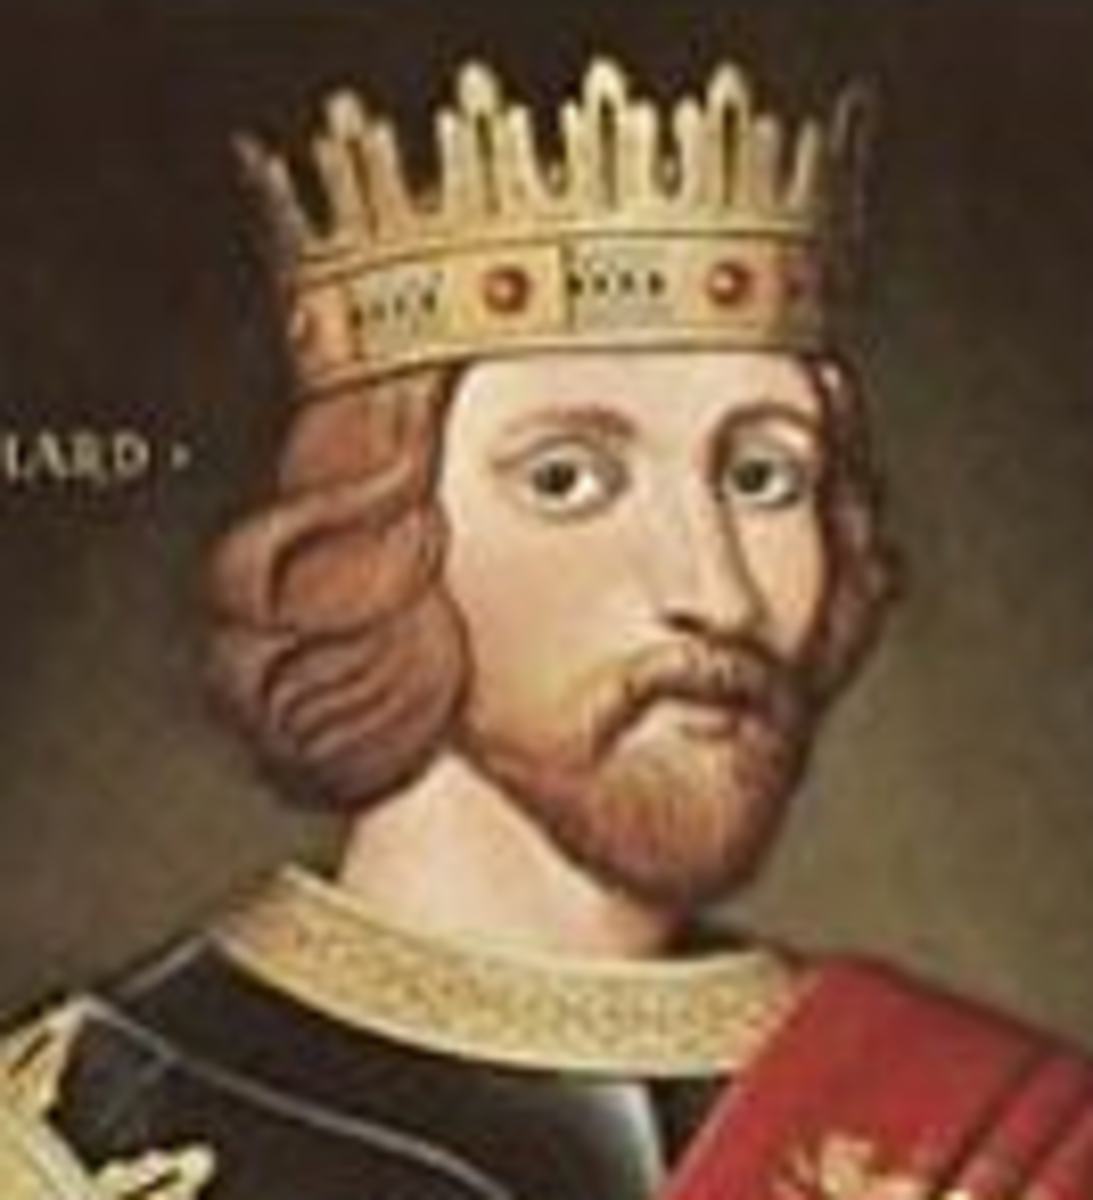 Richard I Lionheart of England.